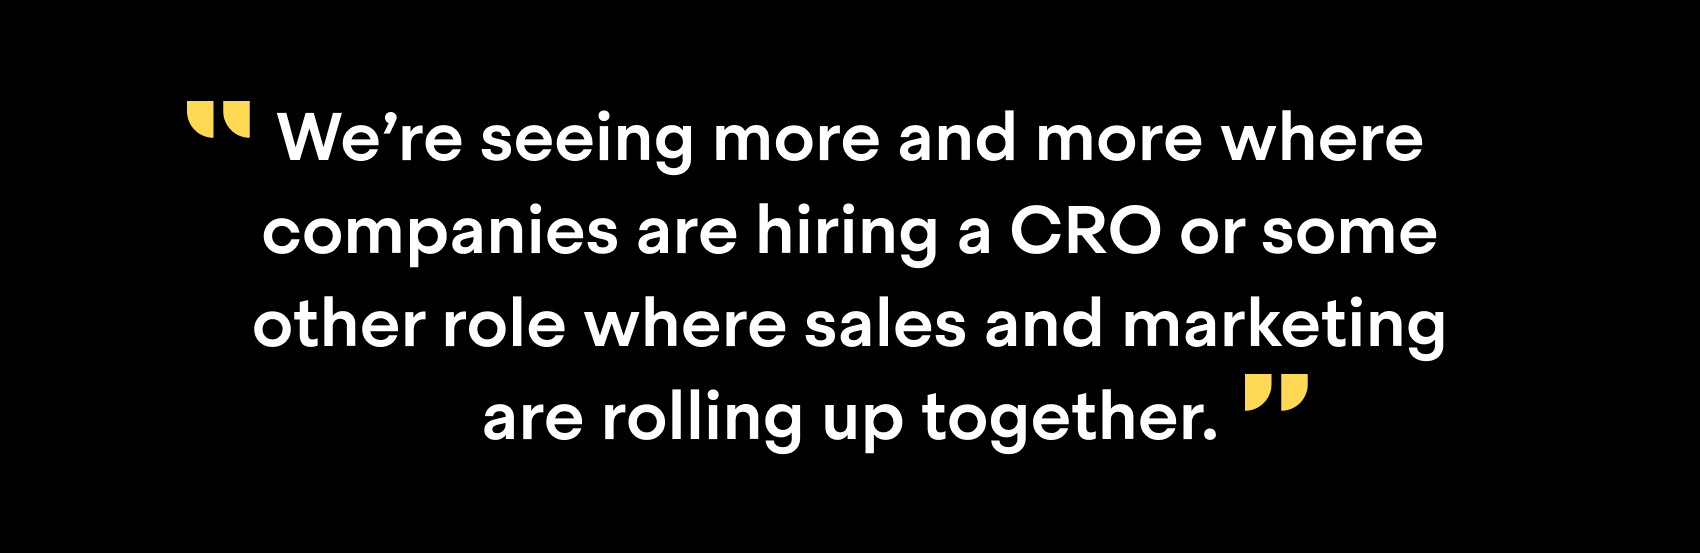 """We're seeing more and more where companies are hiring a CRO or some other role where sales and marketing are rolling up together."""